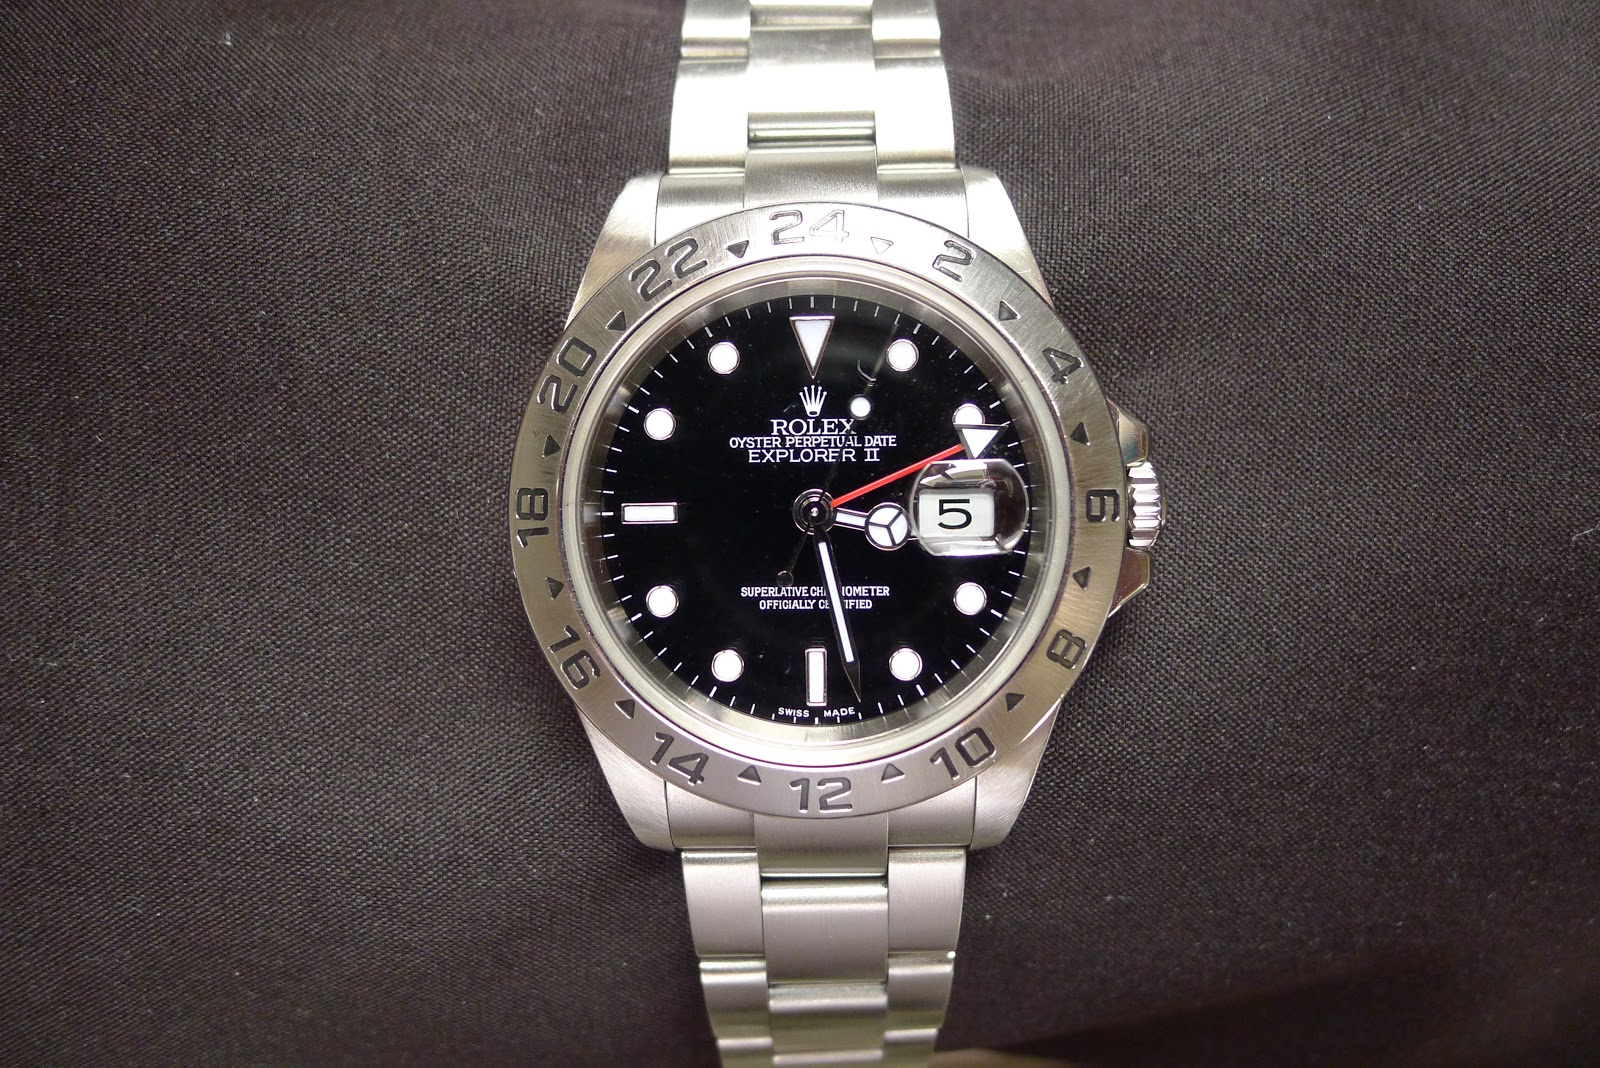 selling buying second hand rolex watches. Black Bedroom Furniture Sets. Home Design Ideas